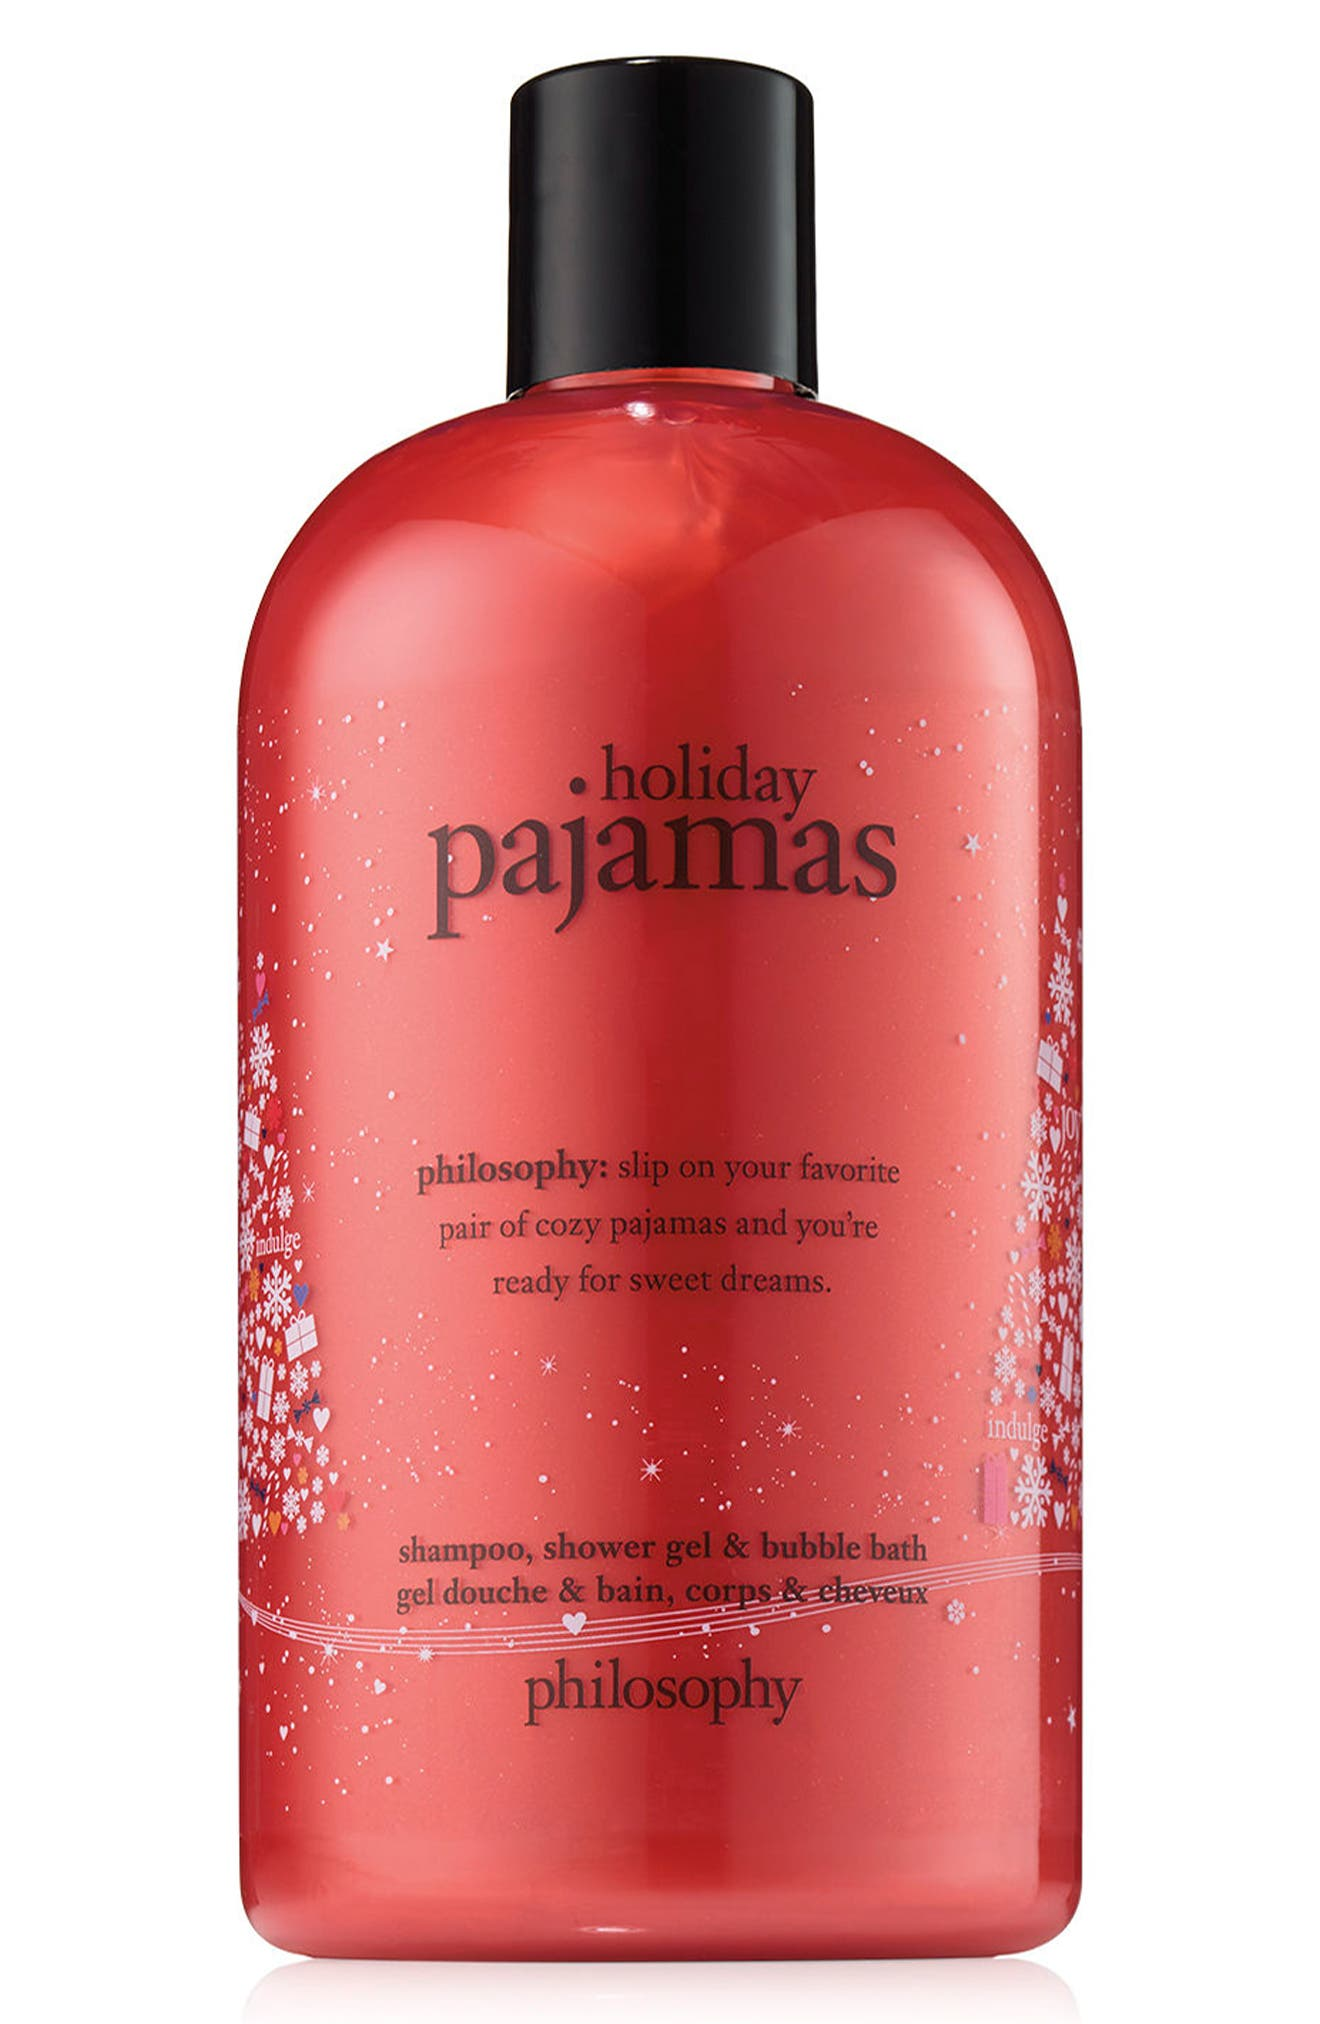 Alternate Image 1 Selected - philosophy holiday pajamas shampoo, shower gel & bubble bath (Limited Edition)